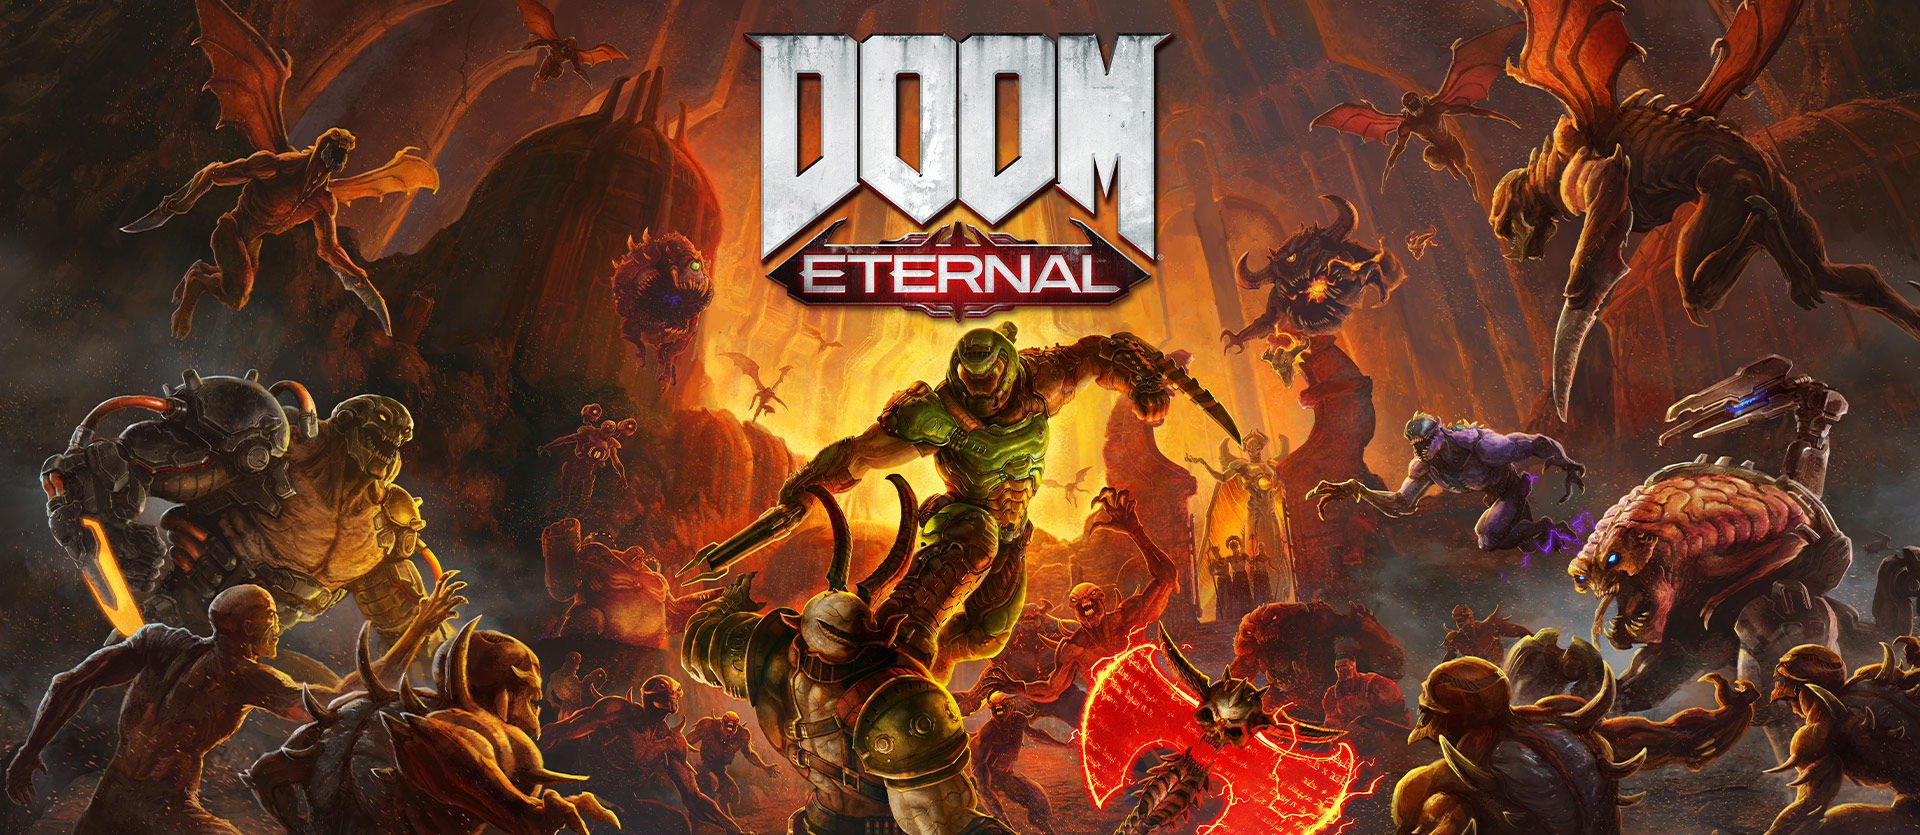 DOOM Eternal, personage vecht tegen een horde monsters.